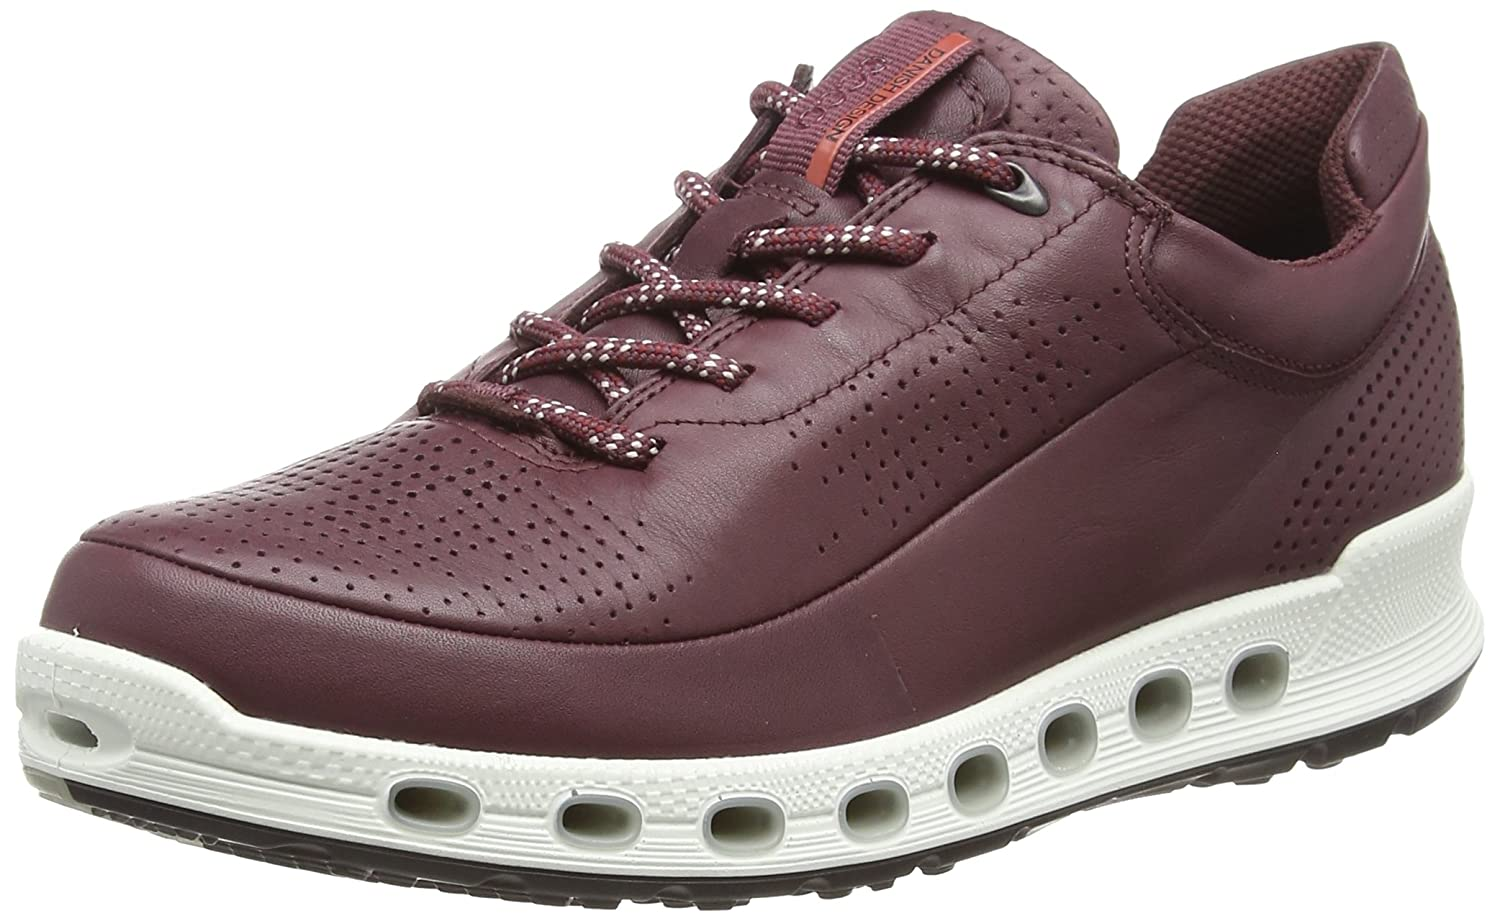 ECCO Women's Cool 2.0 Gore-Tex Sneaker B077122HN4 42 M EU (11-11.5 US)|Wine